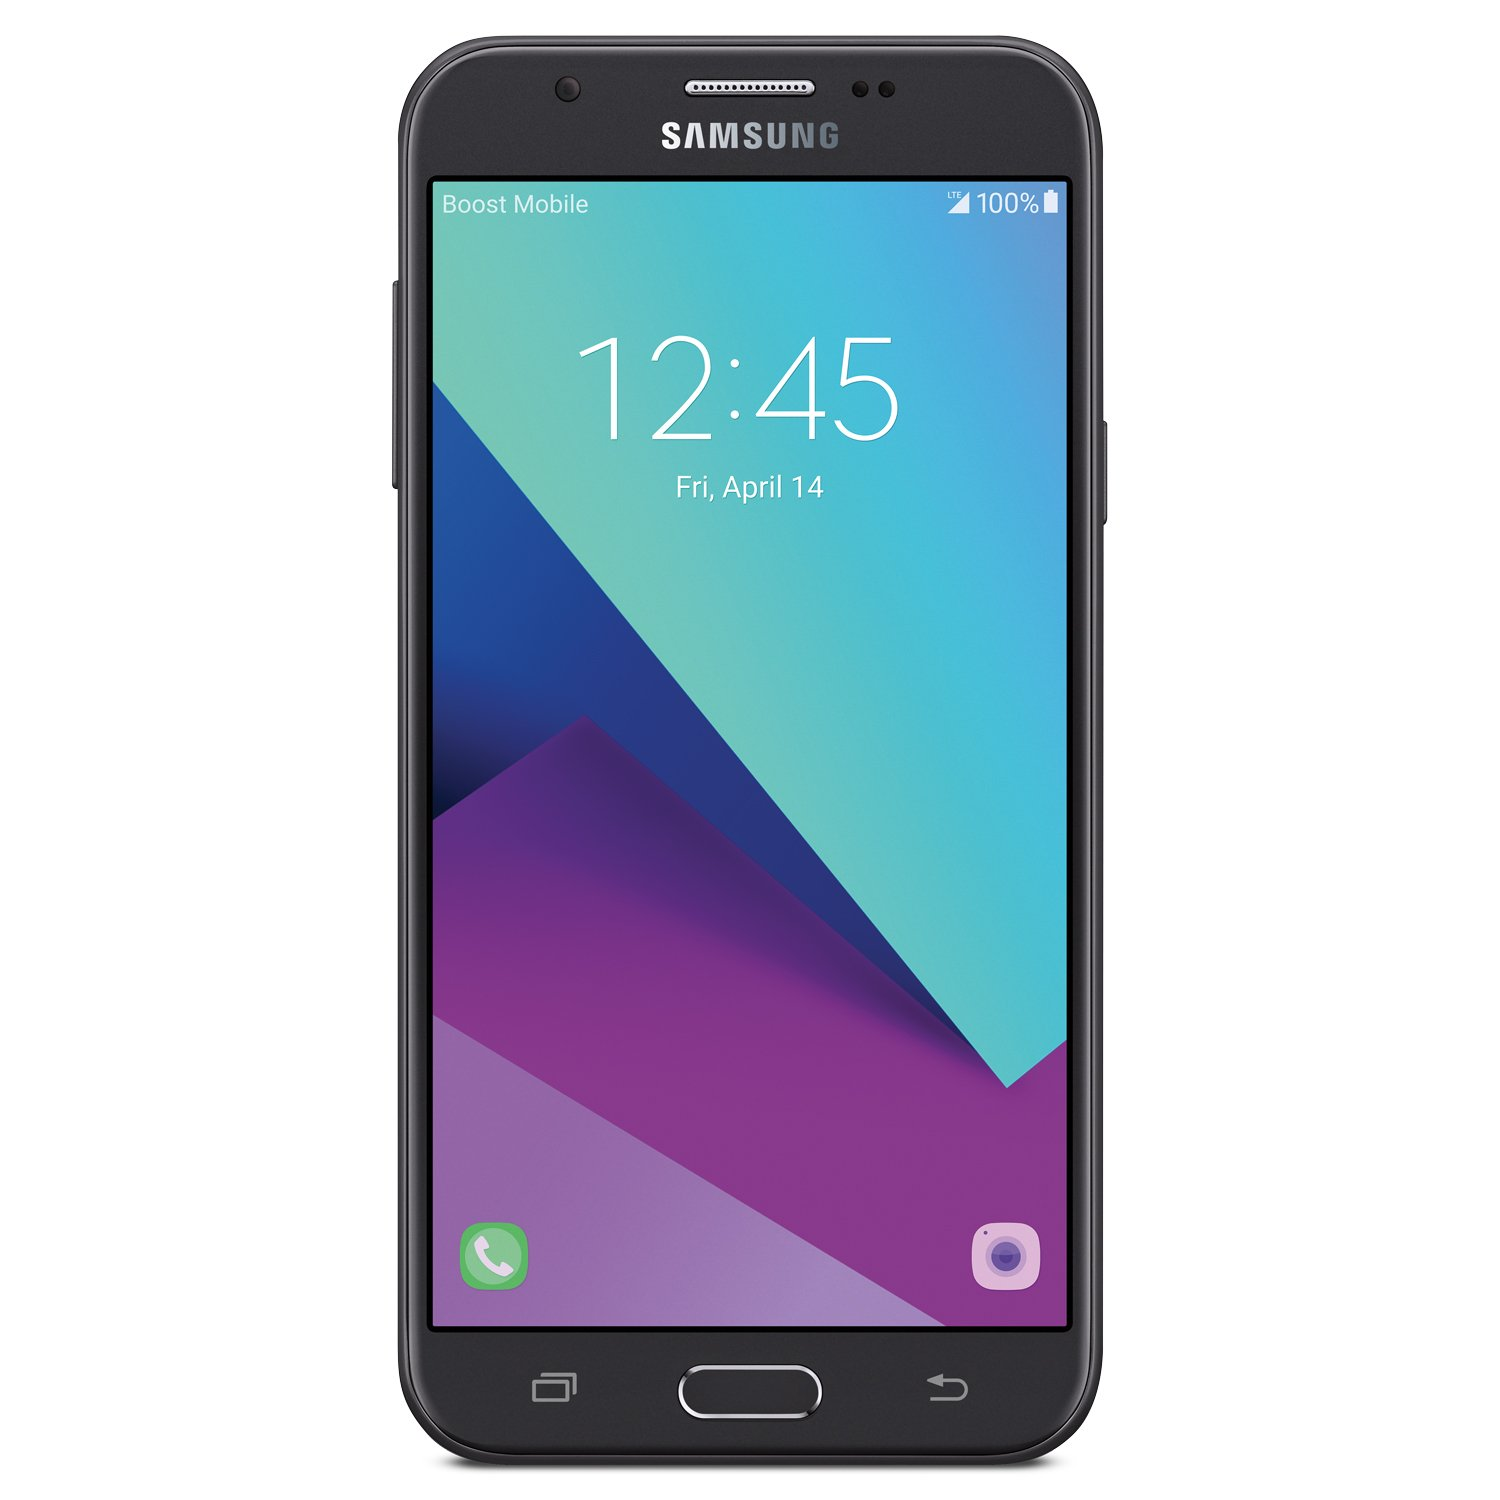 Samsung Galaxy J7 Perx - Prepaid - Carrier Locked (Boost Mobile)